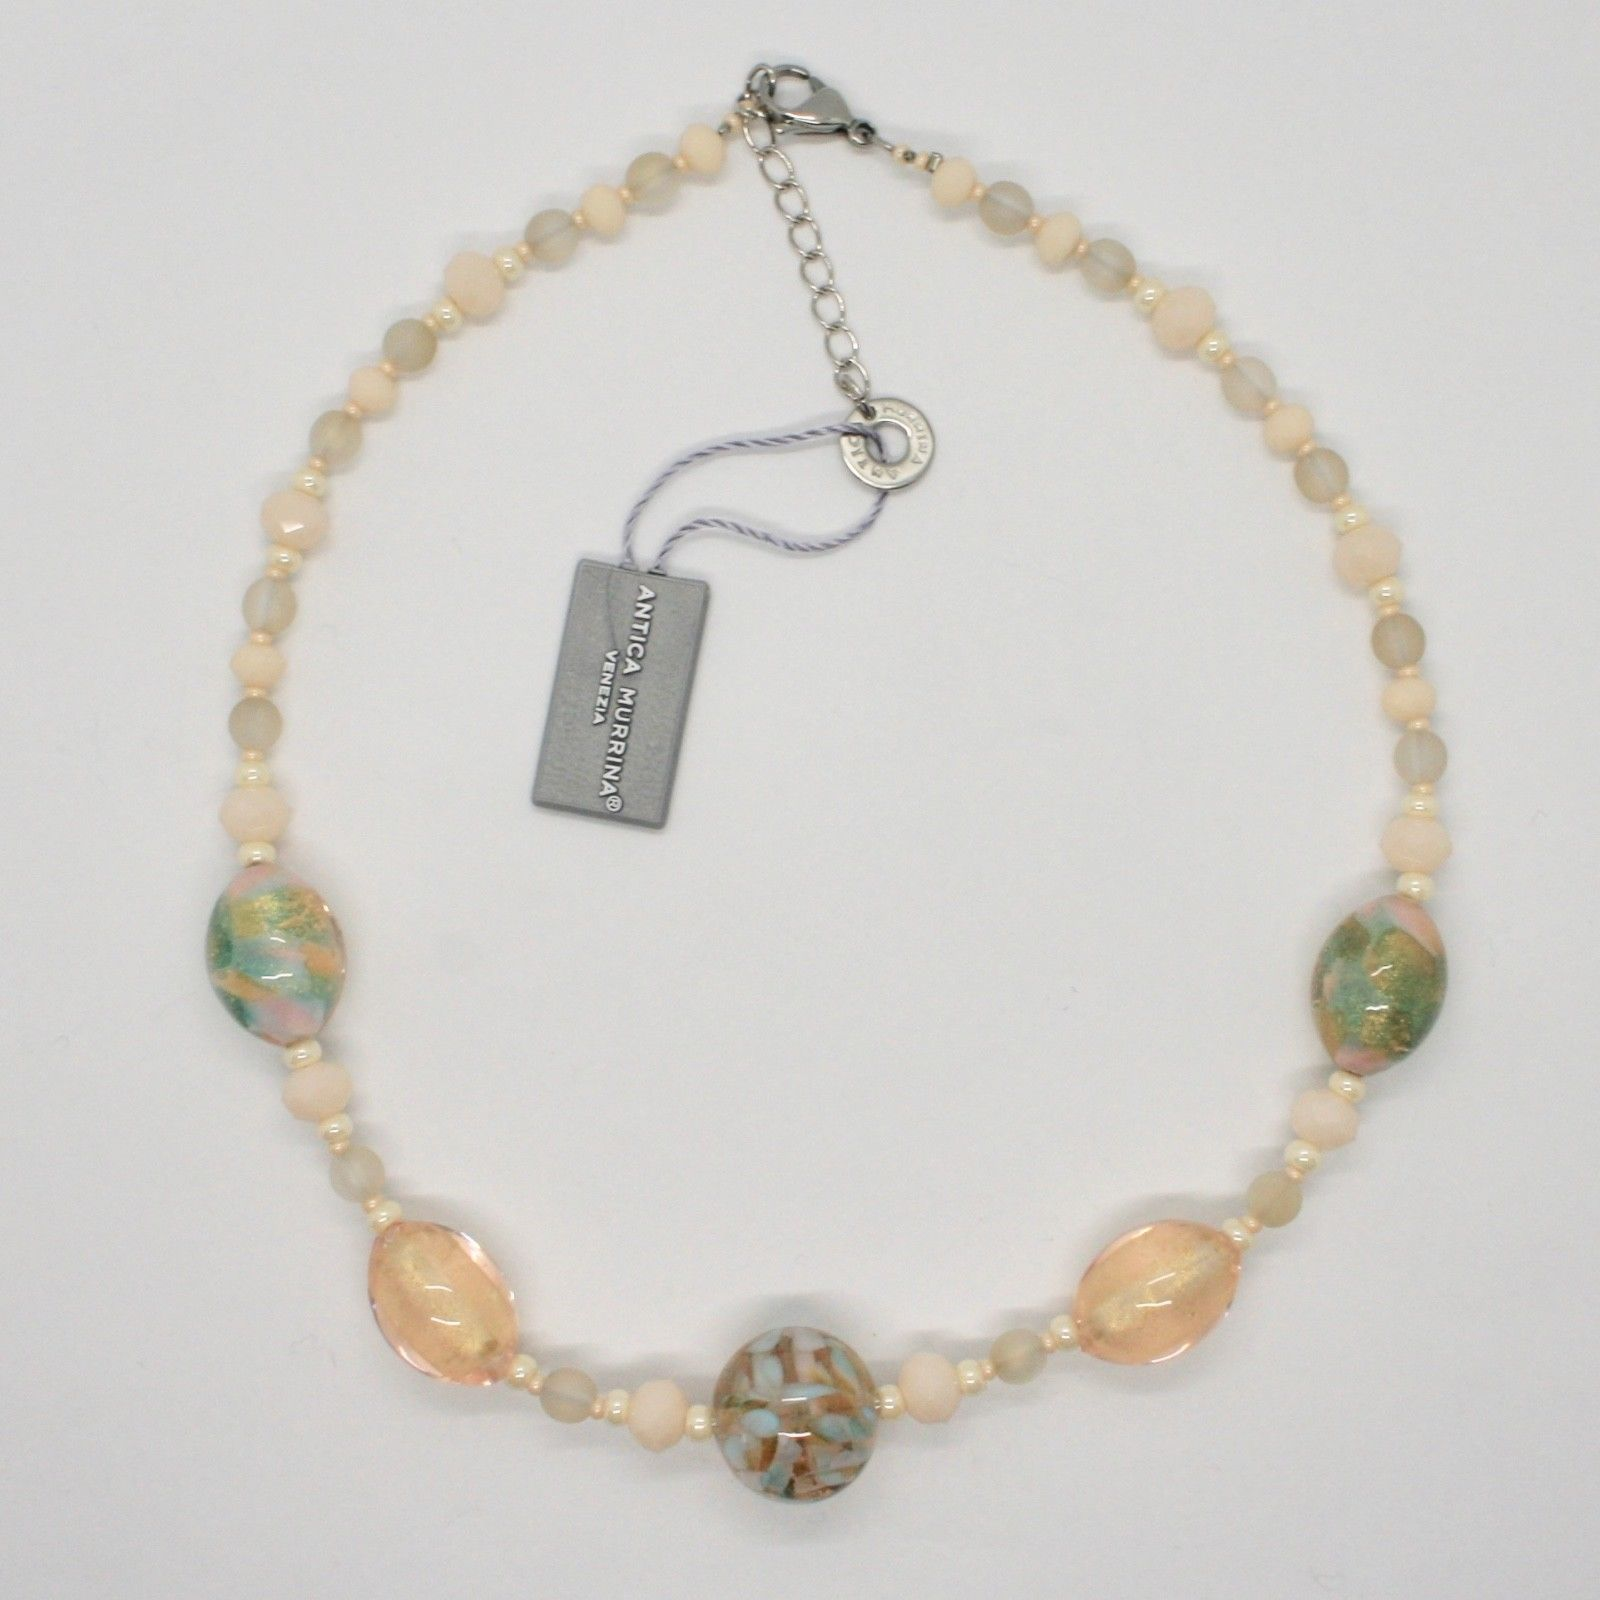 NECKLACE ANTICA MURRINA VENEZIA WITH MURANO GLASS BEIGE CREAM YELLOW COA78A03